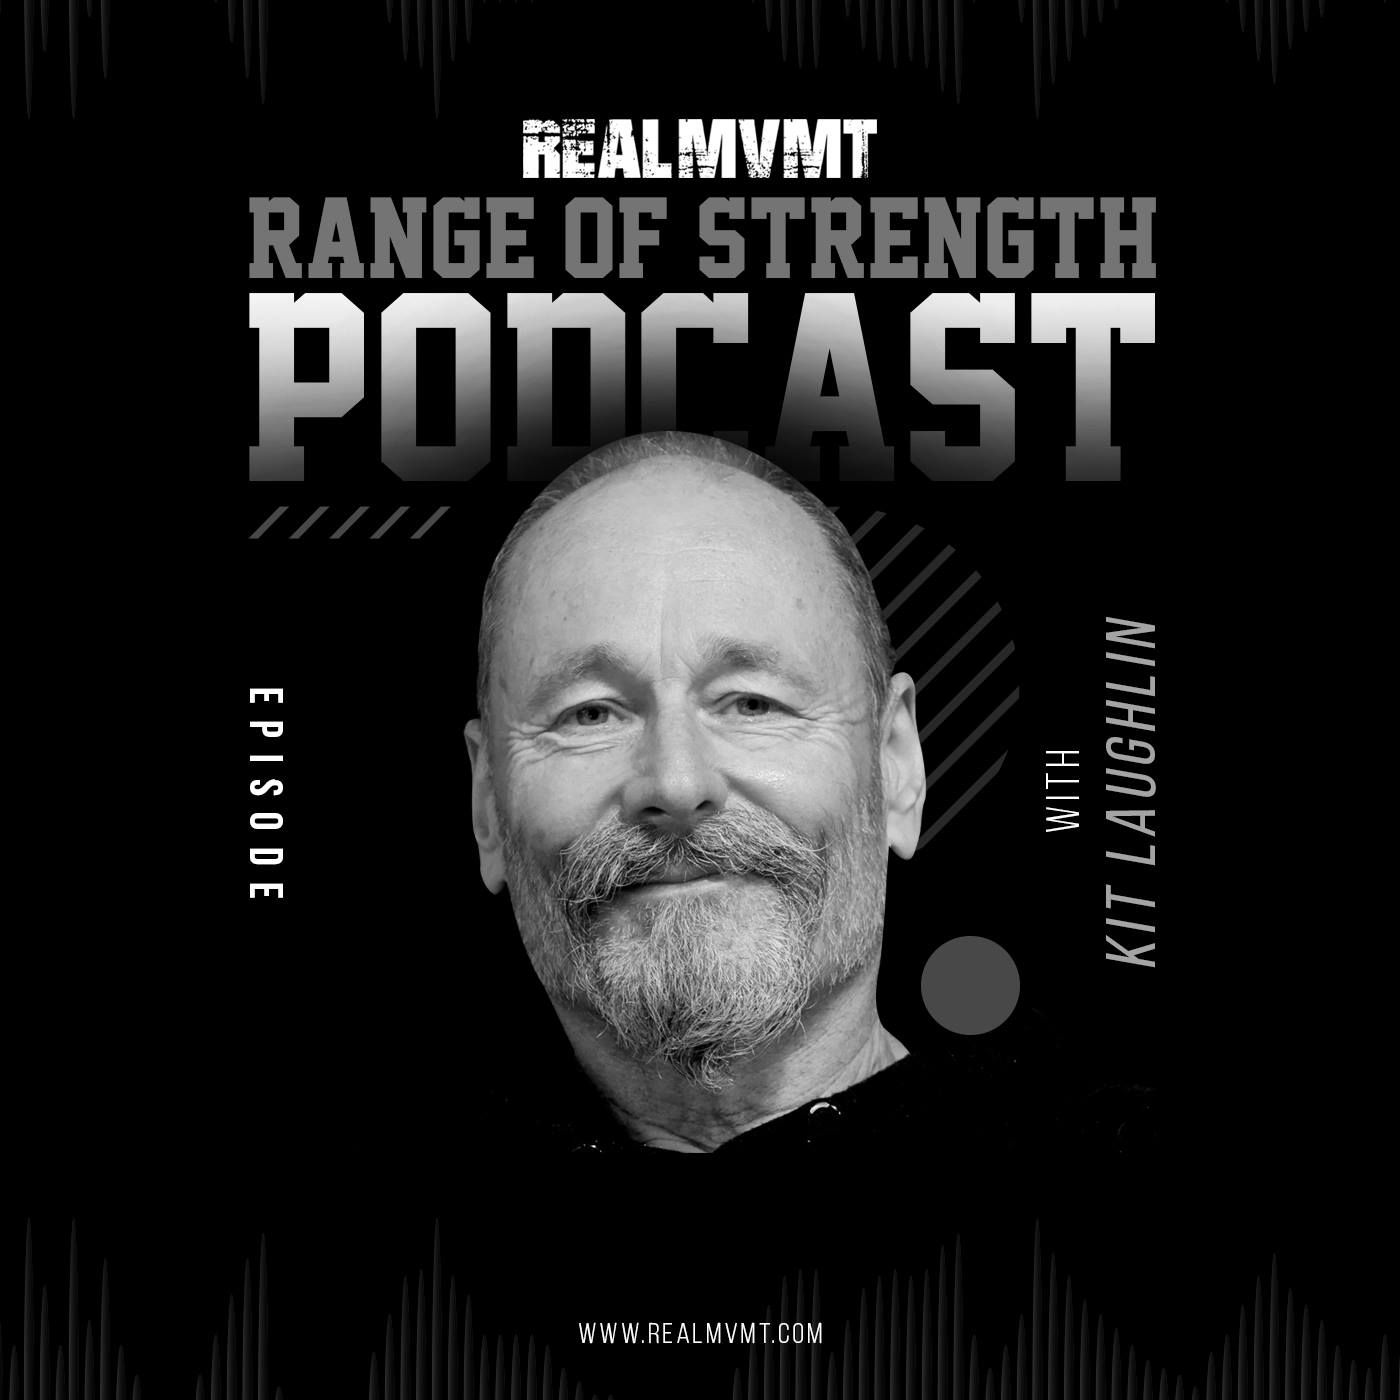 RANGE OF STRENGTH Podcast Episode 14: Kit Laughlin, Founder Stretch Therapy